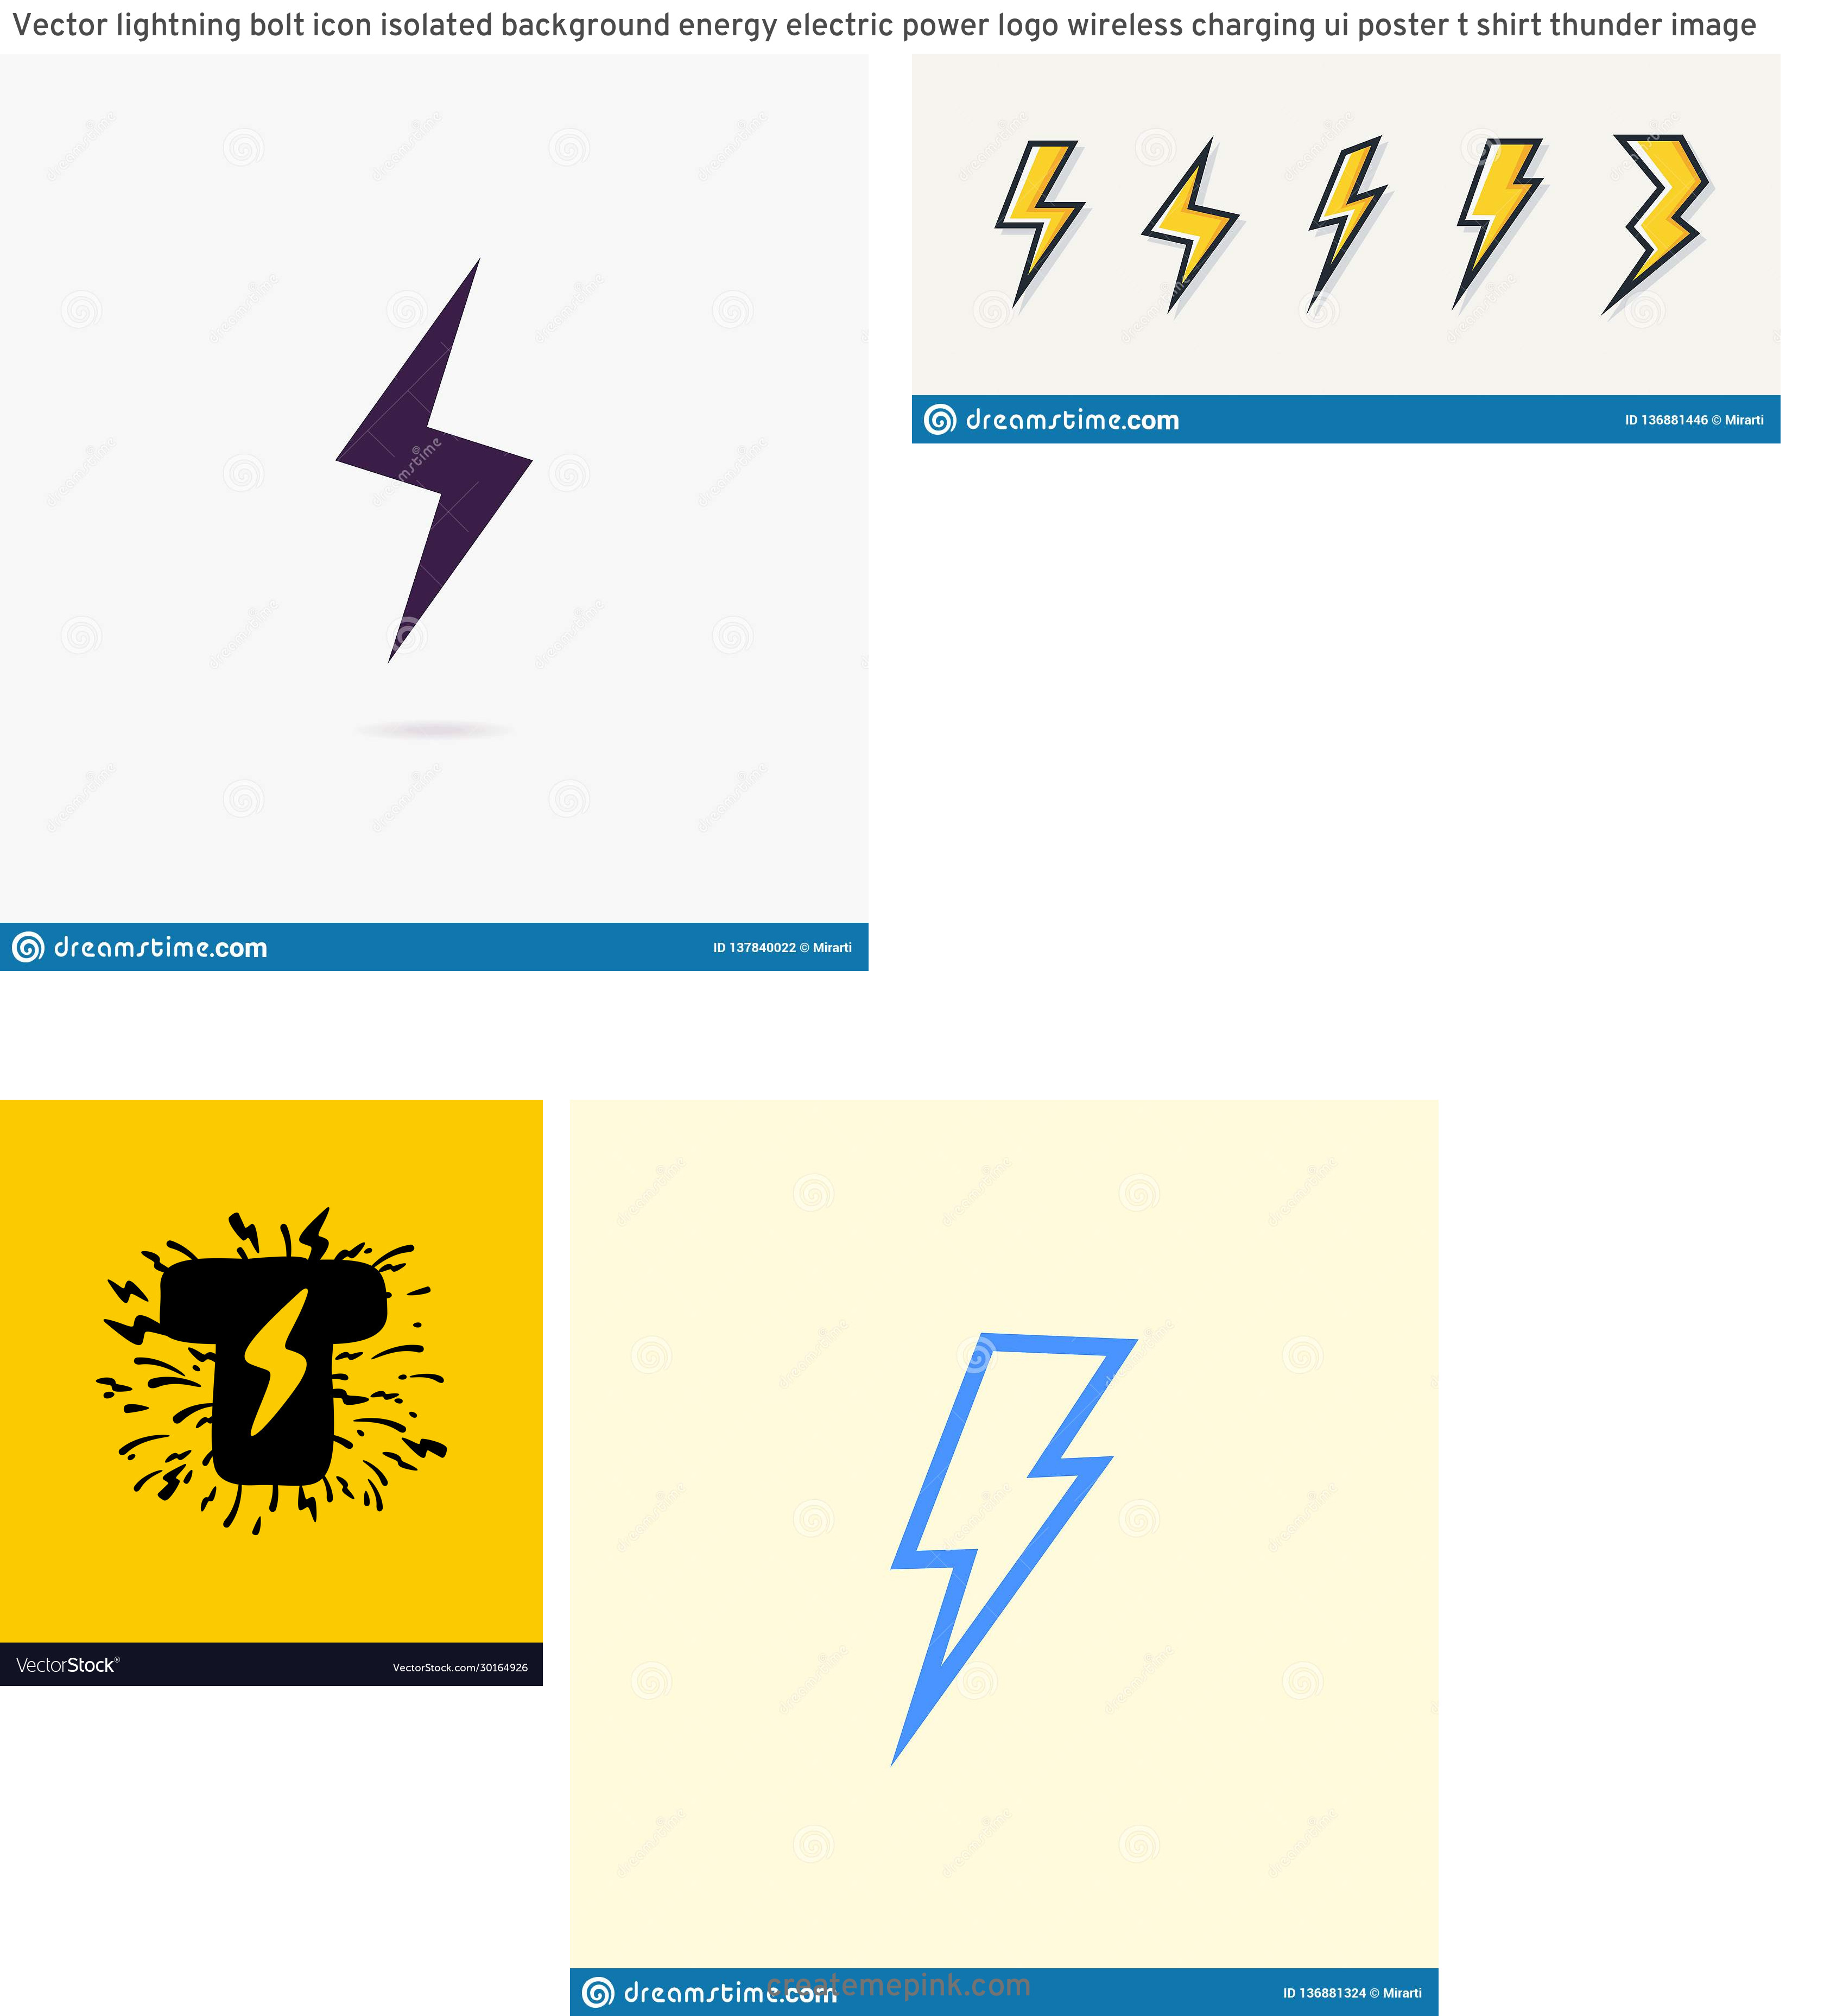 Lightning Vector T: Vector Lightning Bolt Icon Isolated Background Energy Electric Power Logo Wireless Charging Ui Poster T Shirt Thunder Image